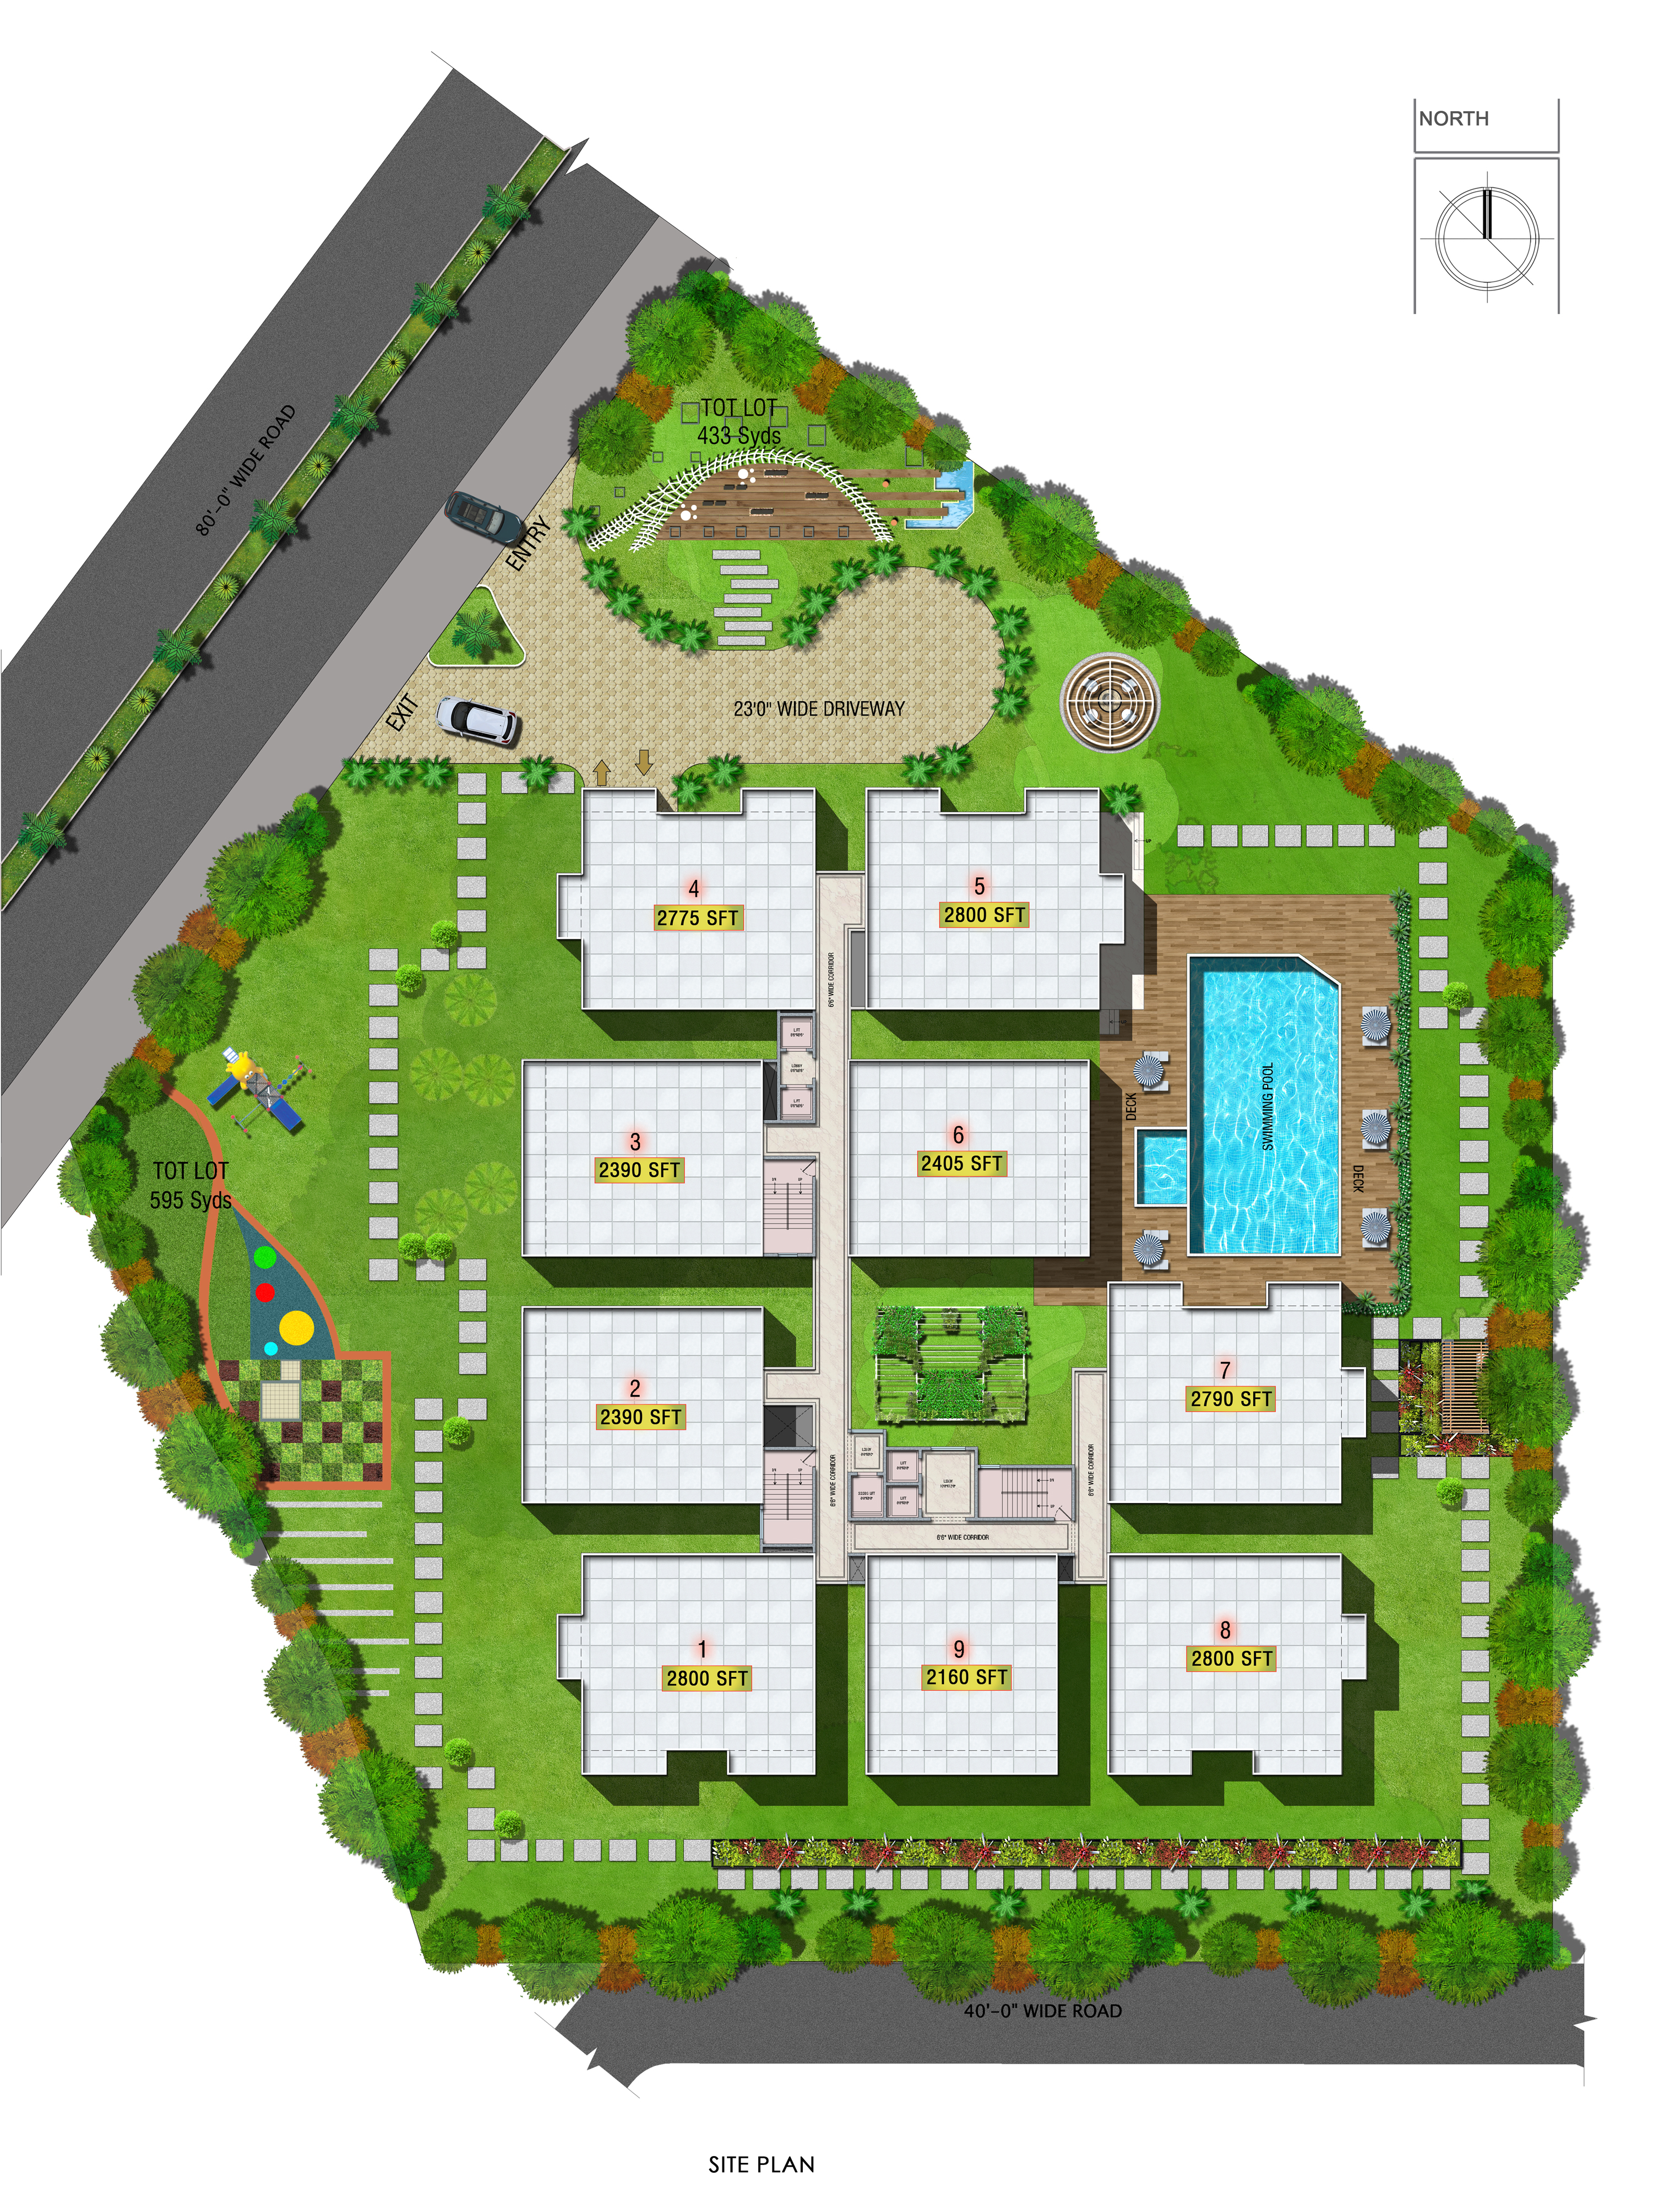 3 Bhk Gated Community Flats For Sale In Manikonda Aparna Westside The Floor Plan At Right Is Only Part Of An Ongoing Electrical Project Site Layout